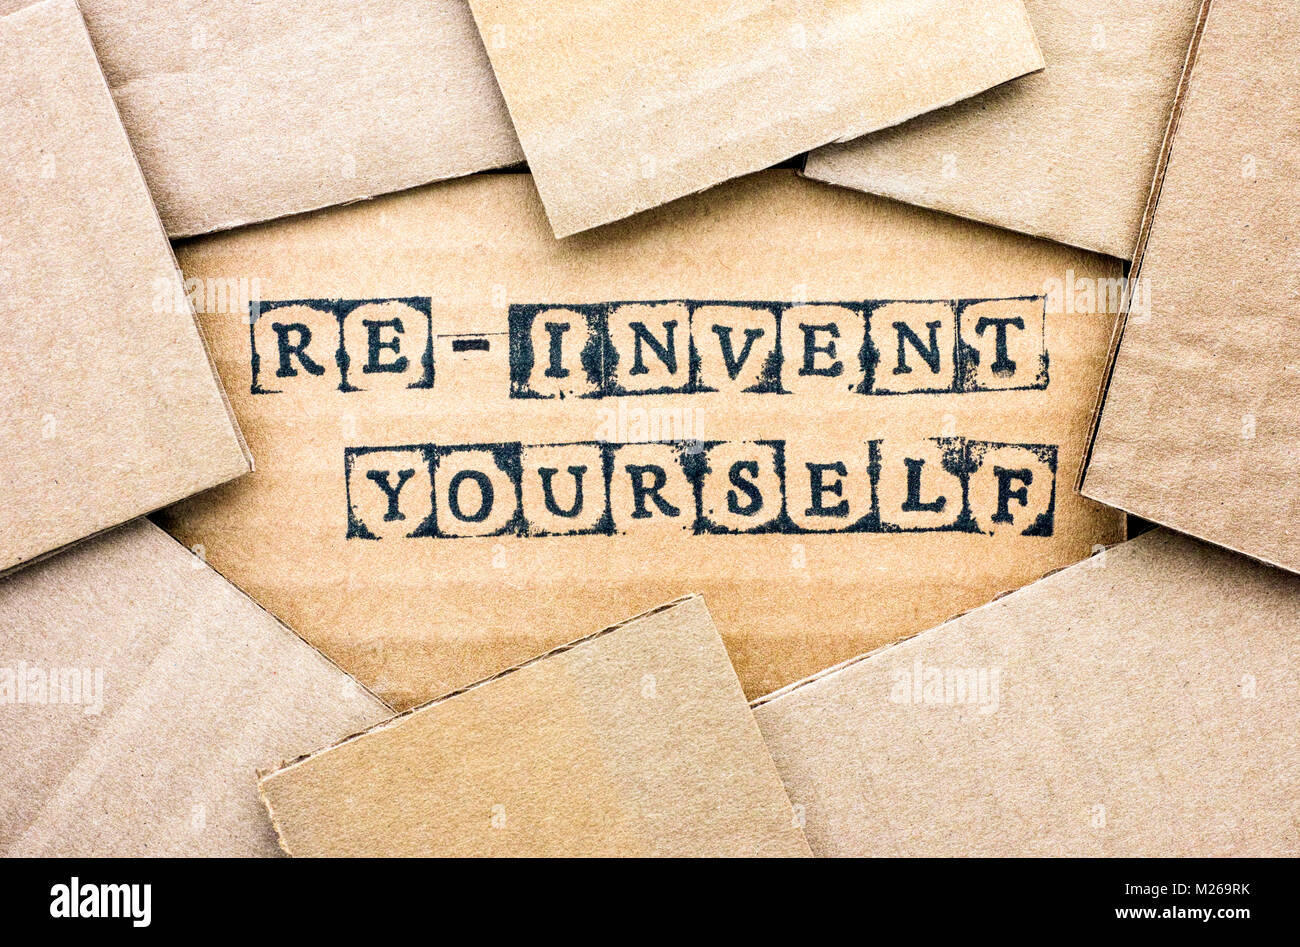 Words Re-invent Yourself make by black alphabet stamps on cardboard with some piece of cardboard. - Stock Image